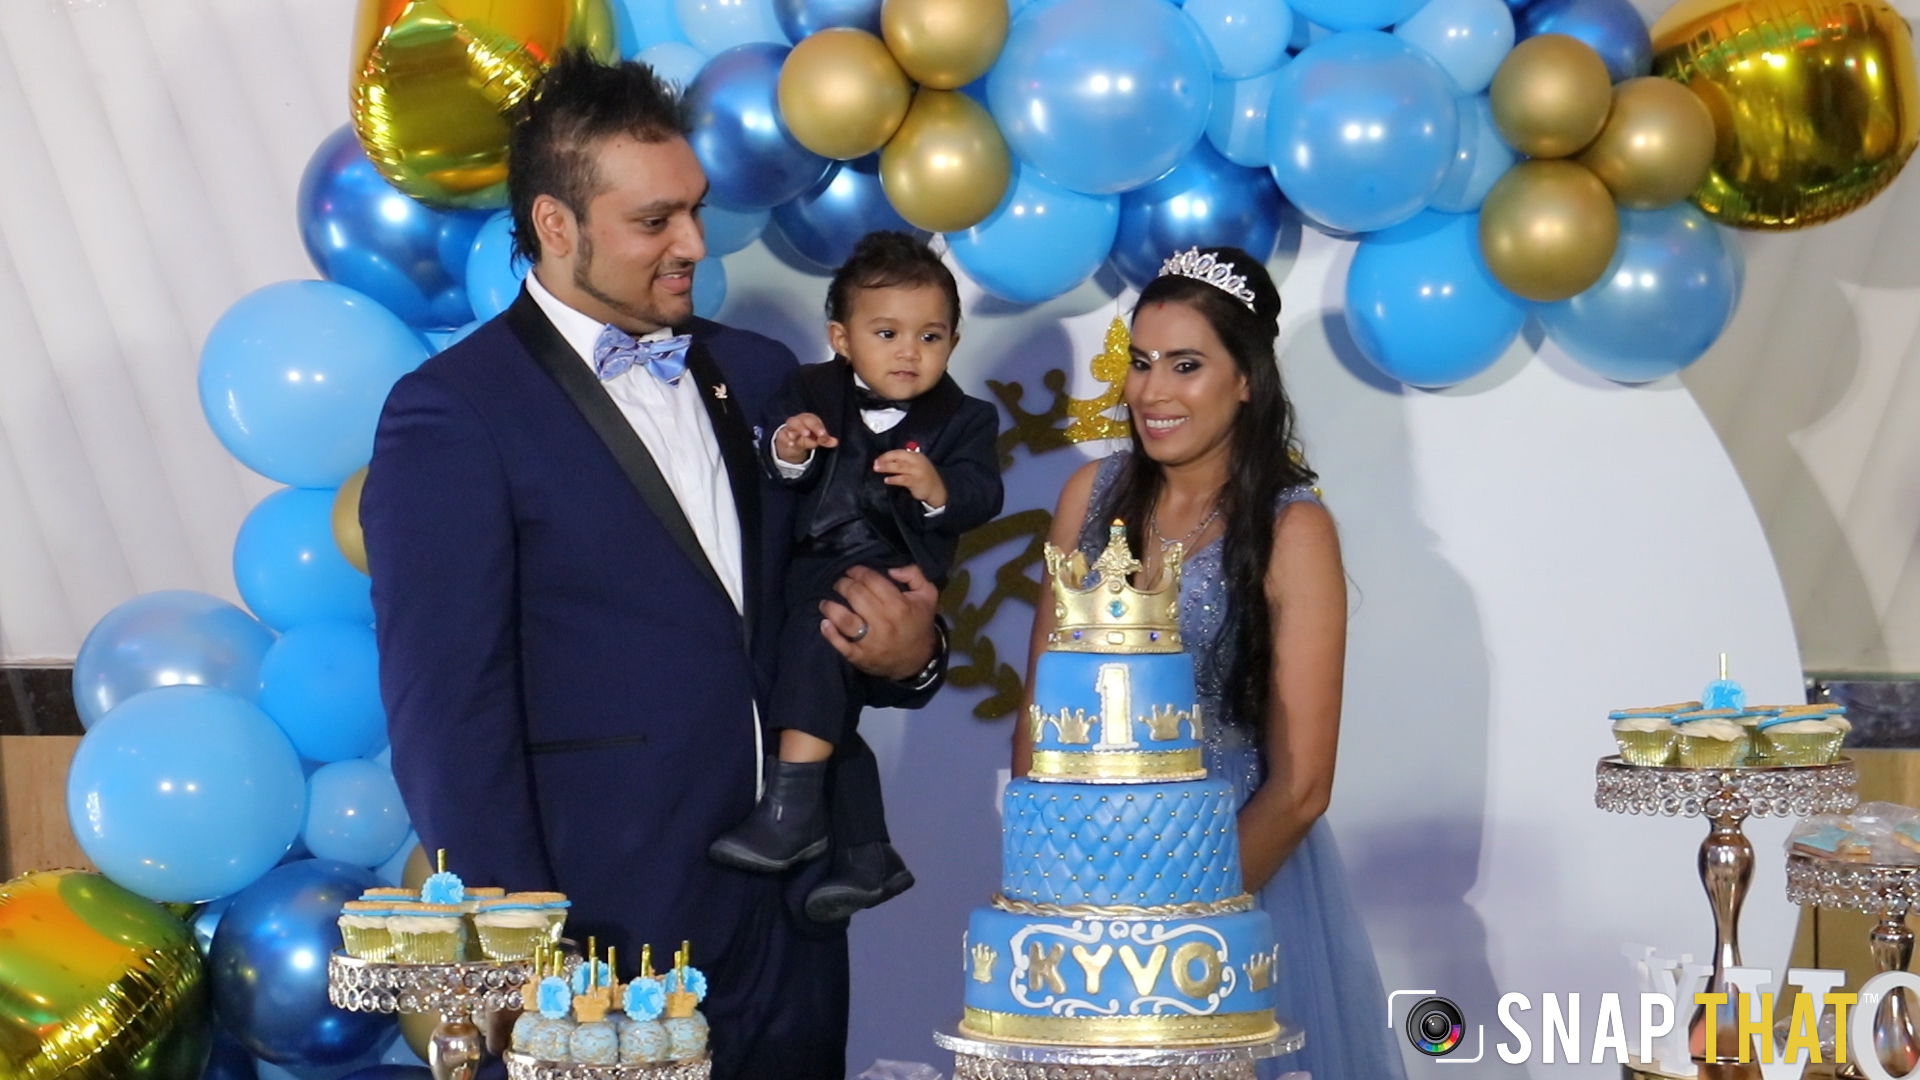 Kyvo's 1st Birthday Highlights